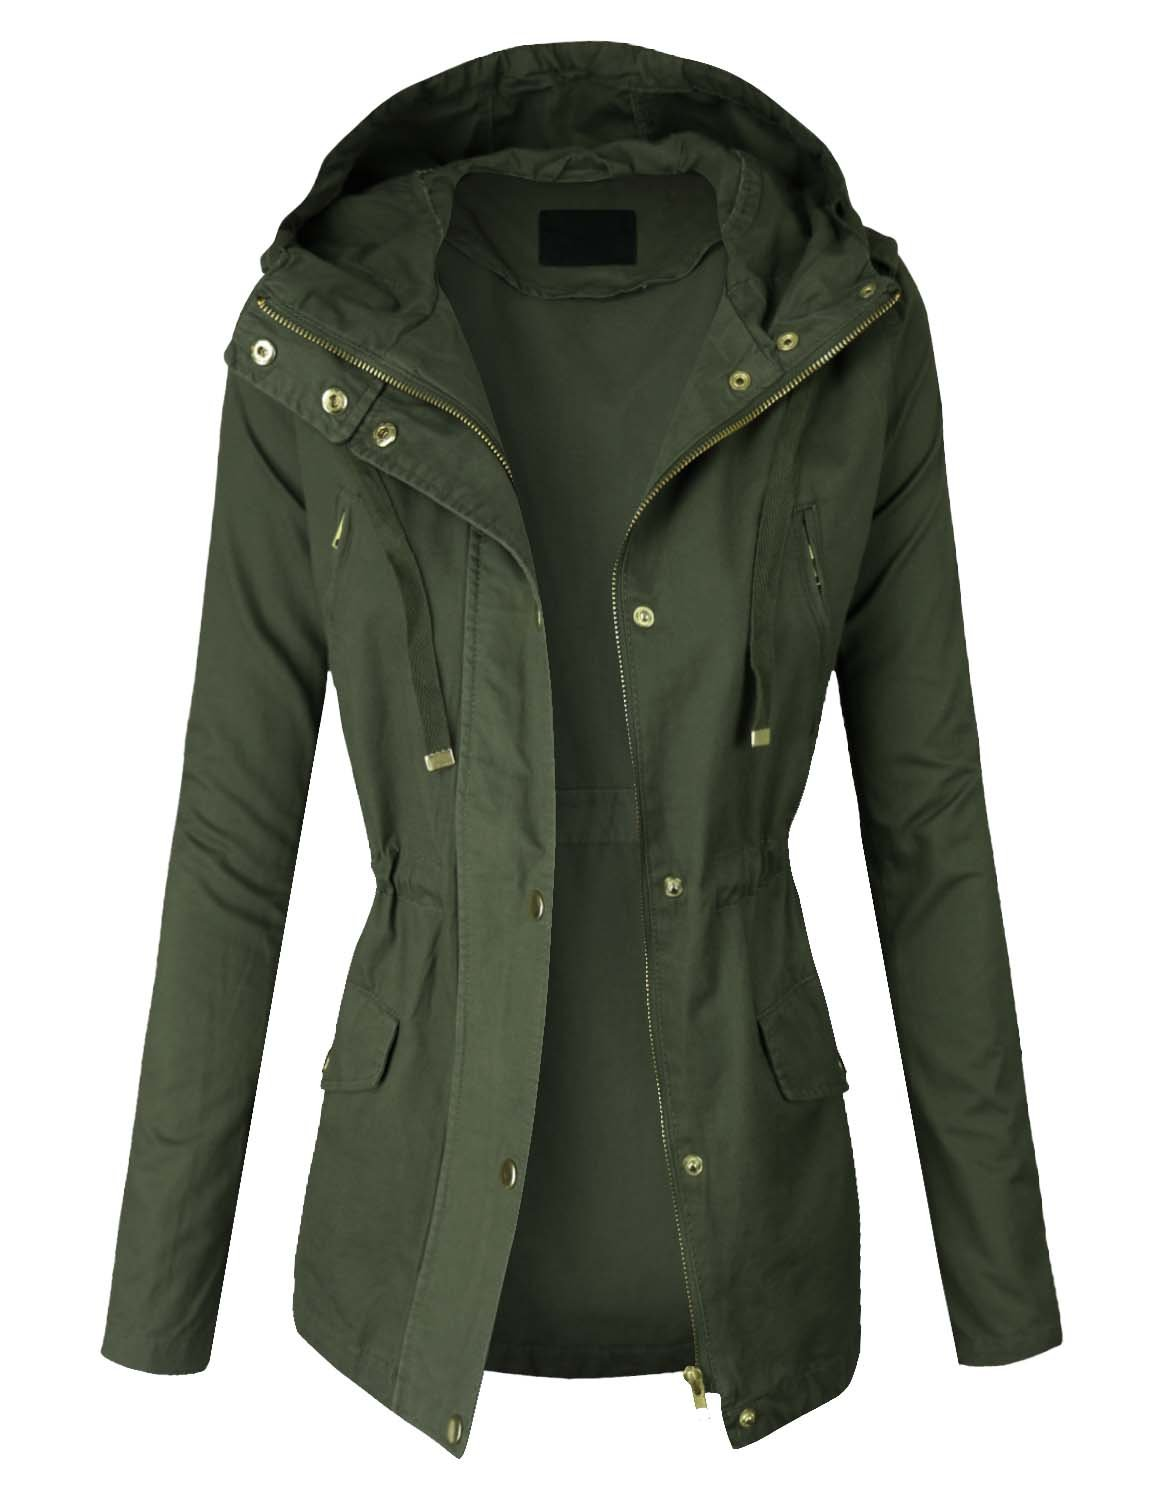 makeitmint Women's Zip Up Military Anorak Jacket w/ Hood Small YJH0018_Olive